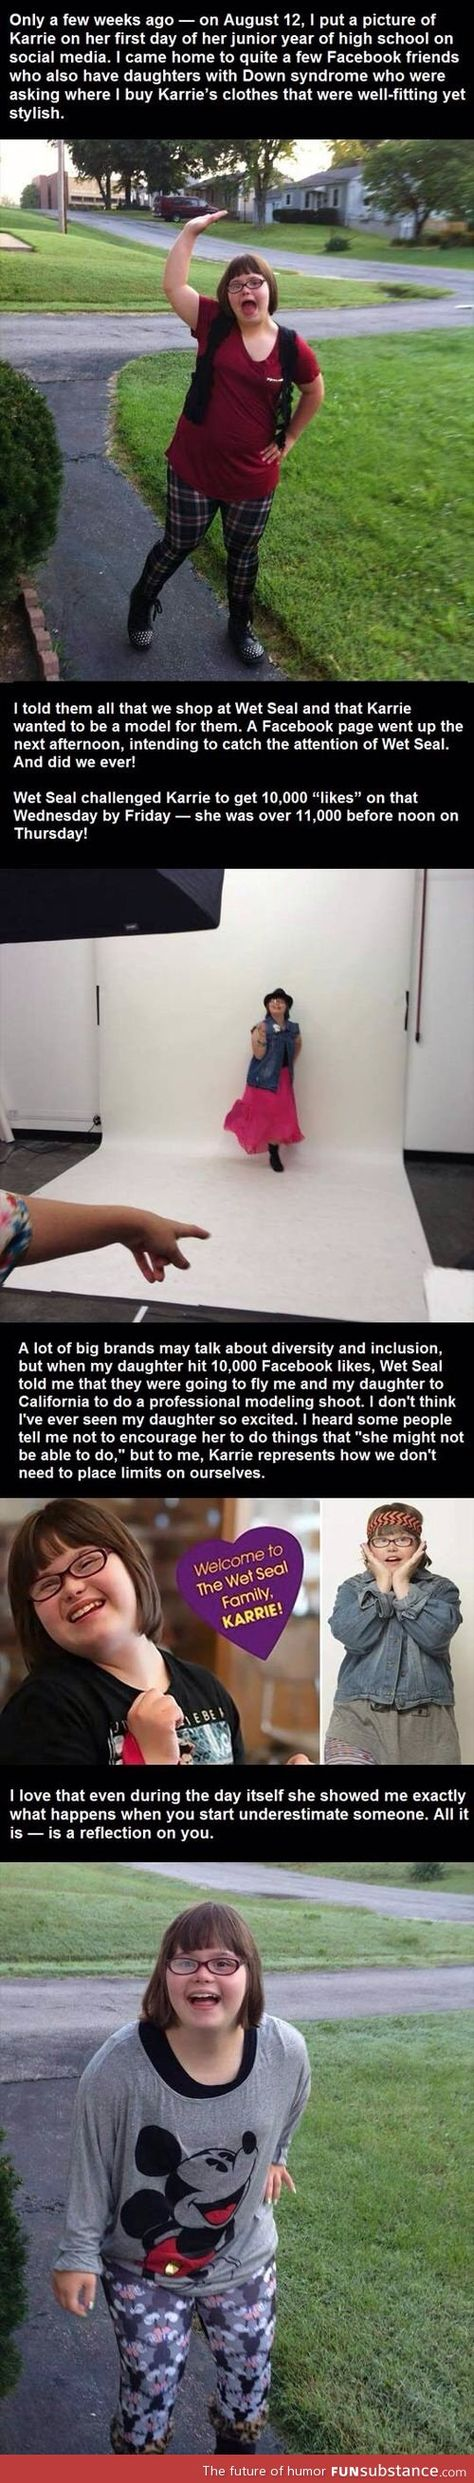 Great story :)